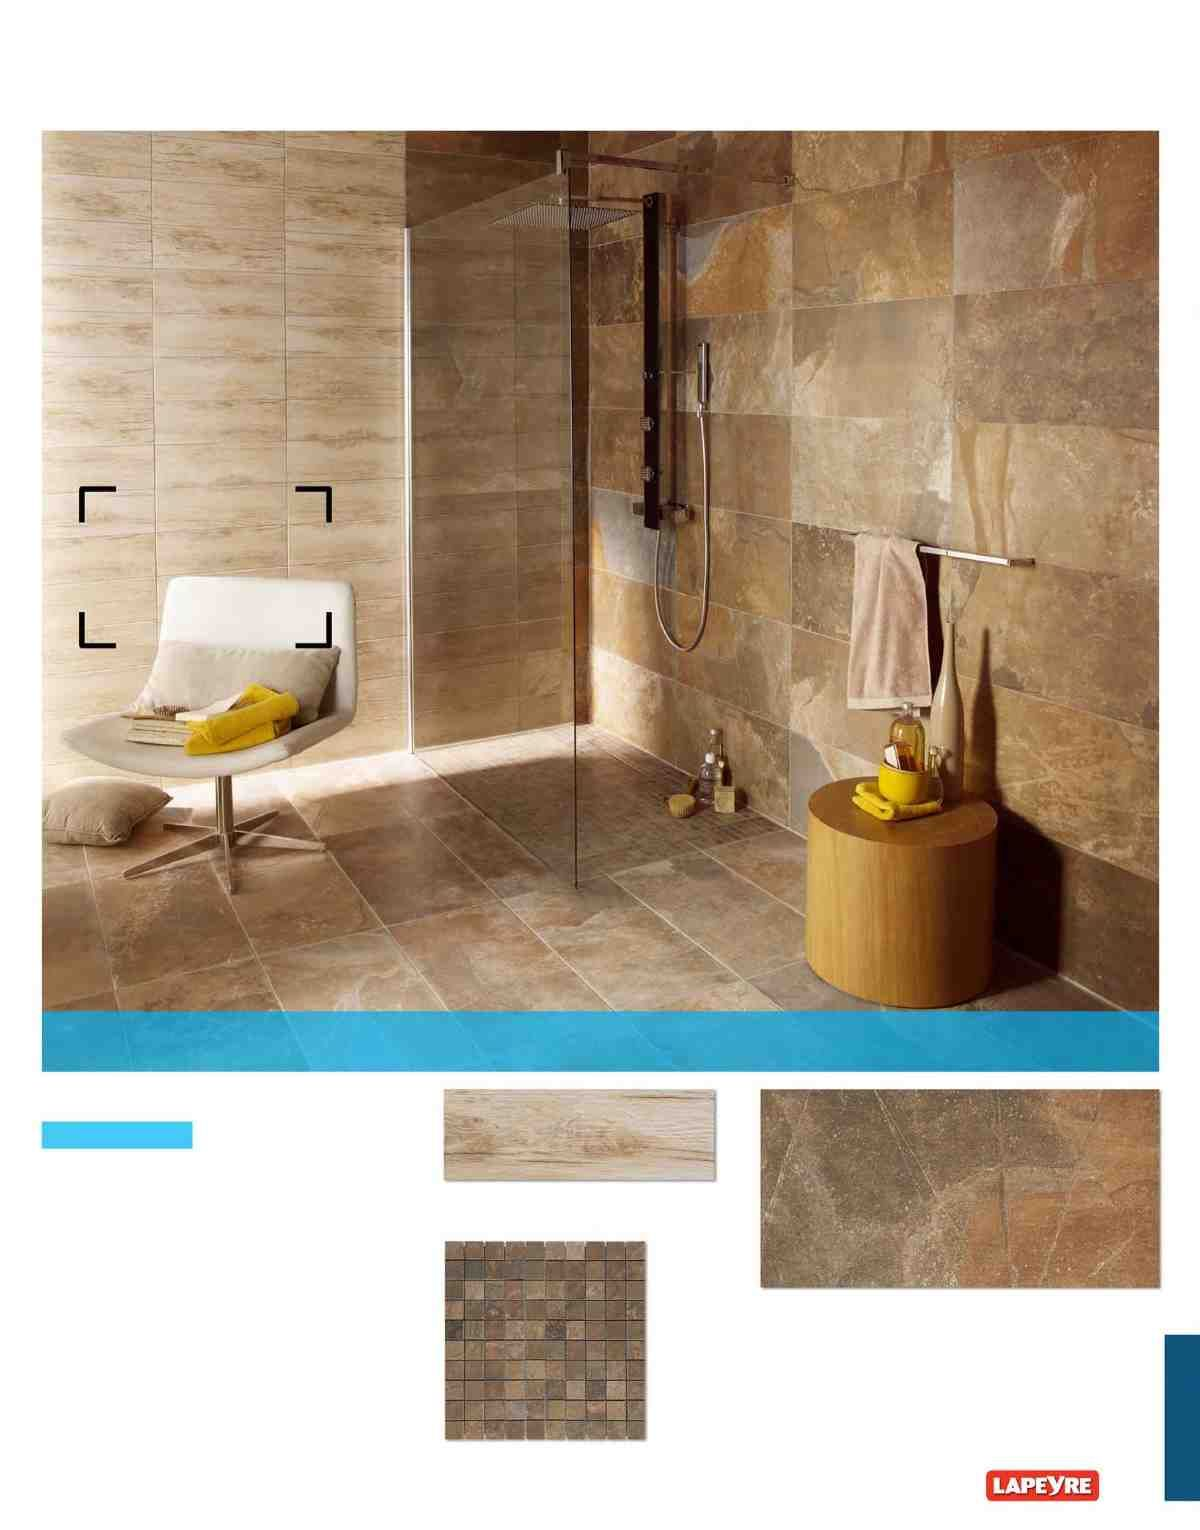 catalogue lapeyre carrelages salle de bains 2014 page 257 id es maison salle de bain. Black Bedroom Furniture Sets. Home Design Ideas